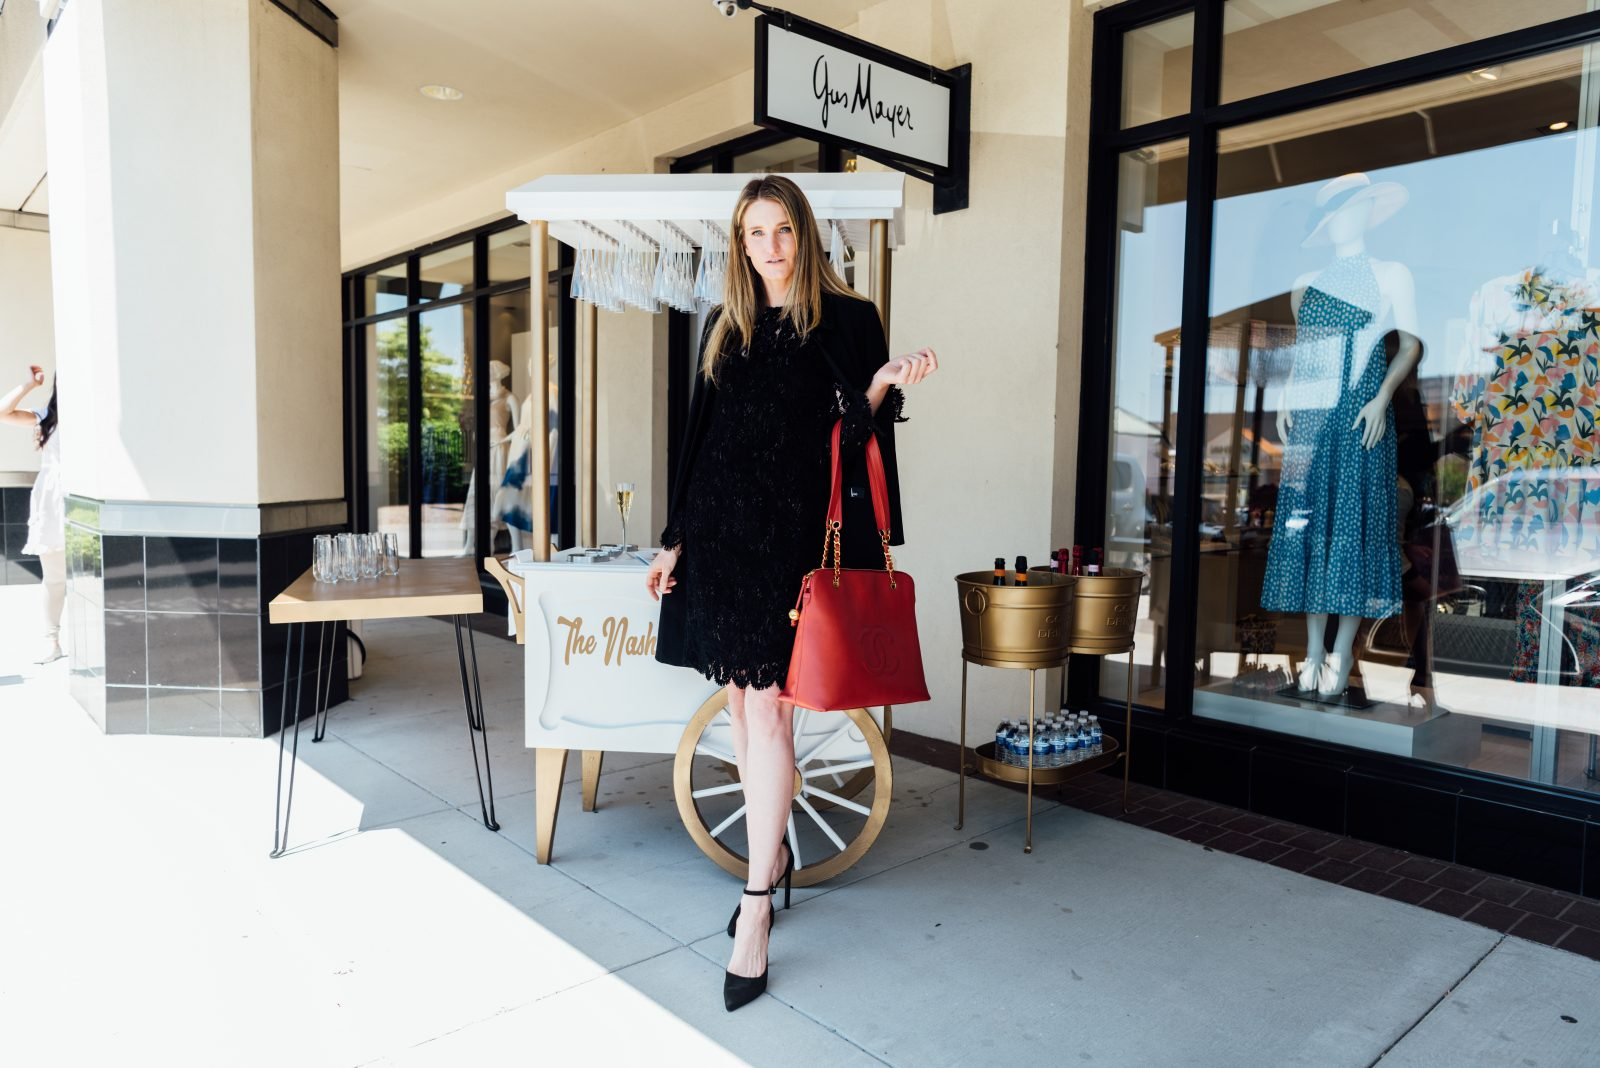 Vintage trunk show at Gus Mayer, story by The Nashville Edit